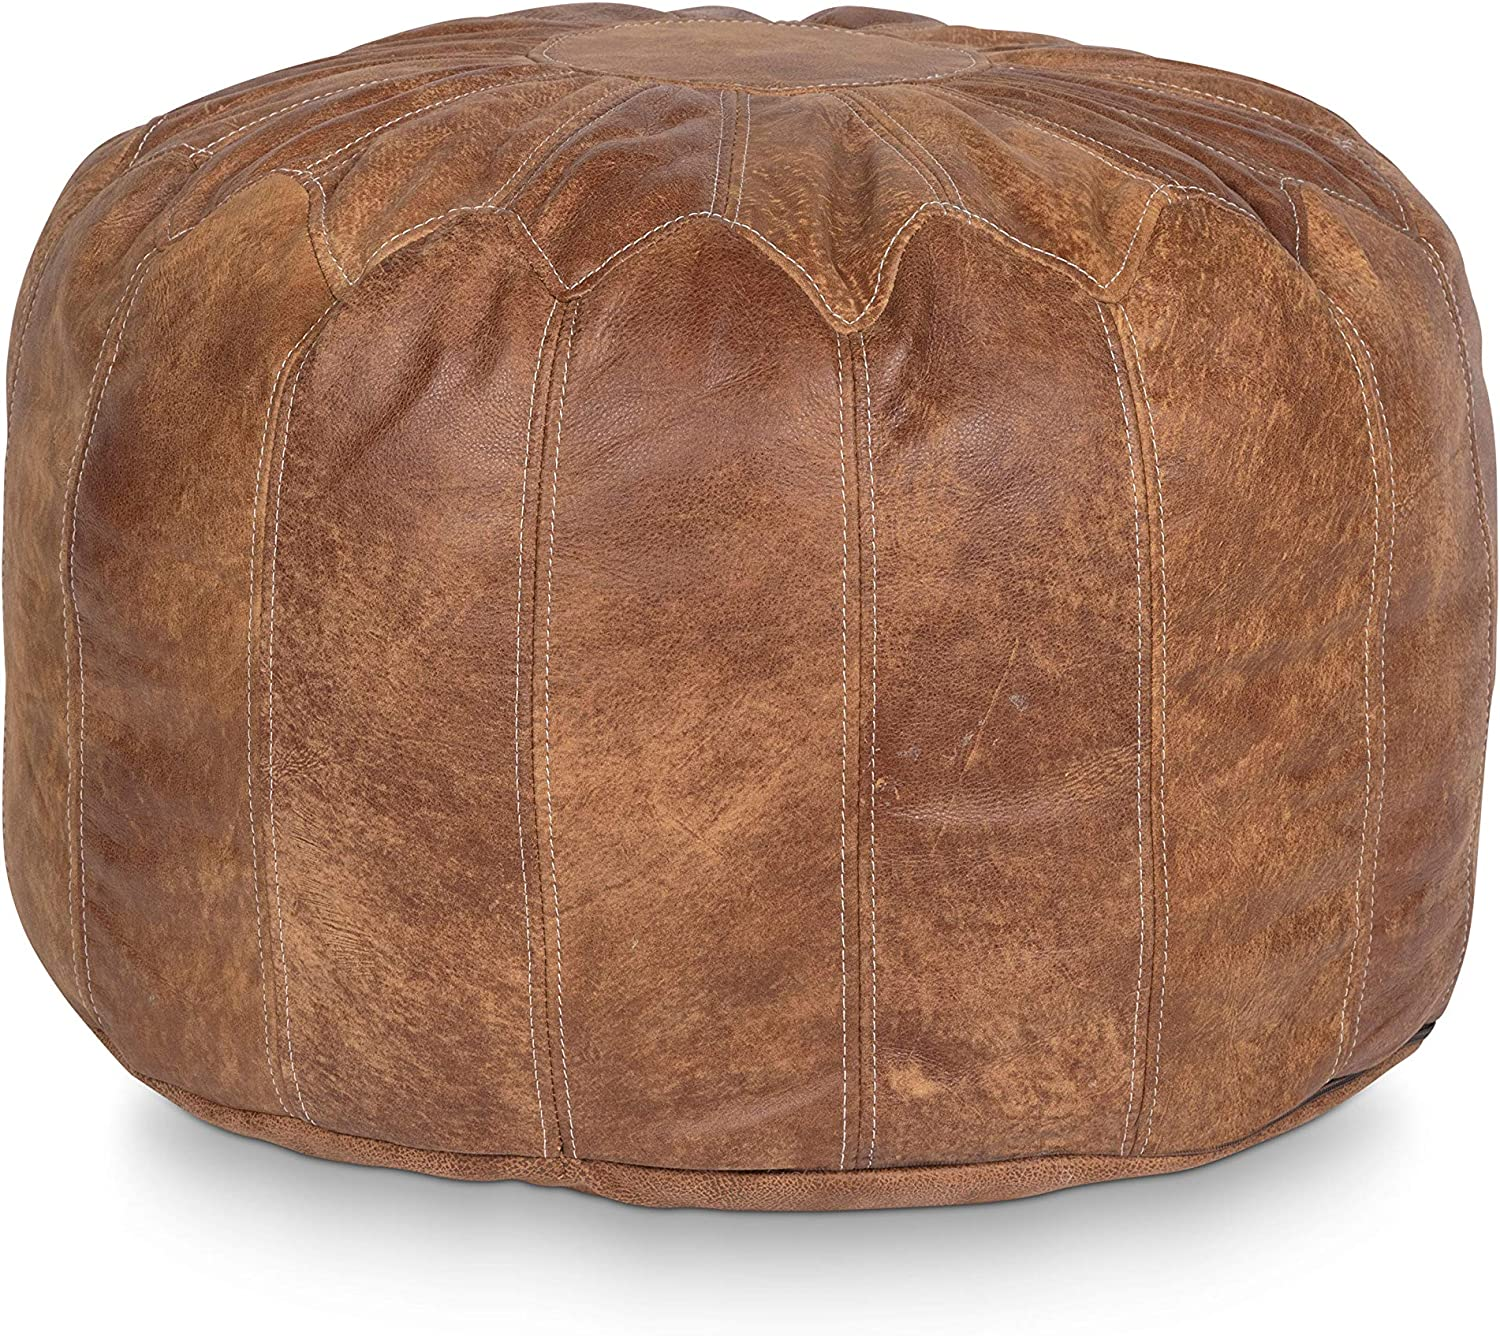 Stone & Leigh Moroccan Genuine Leather Pouf Ottoman Footstool Large Round Stuffed Living Room Decor Bohemian